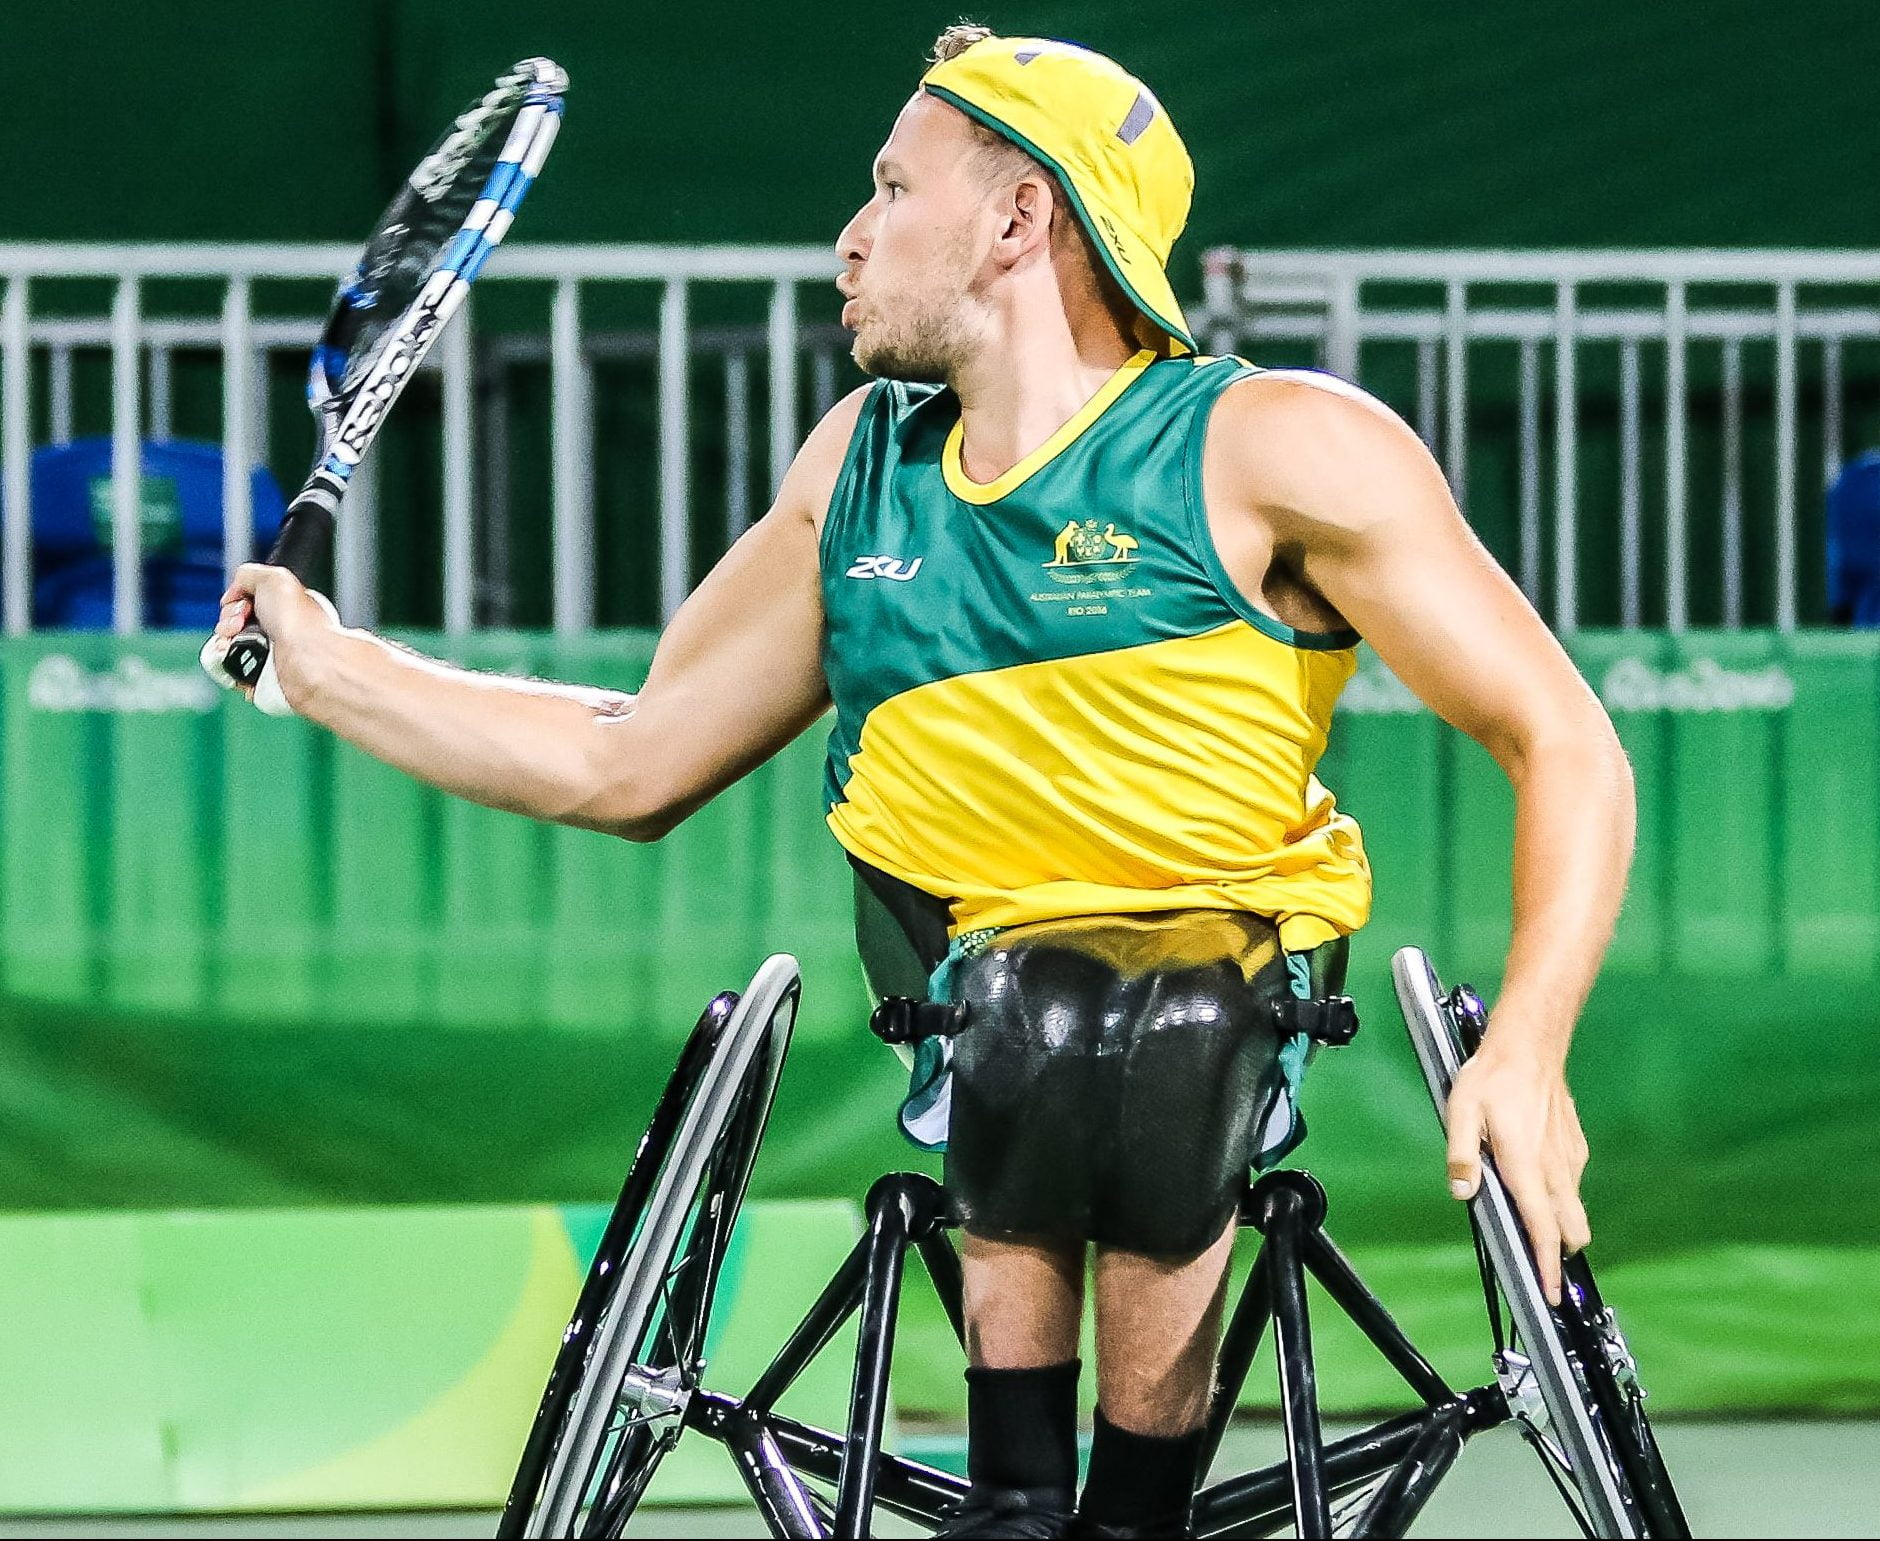 Paralympian of the Year Alcott leads wheelchair field